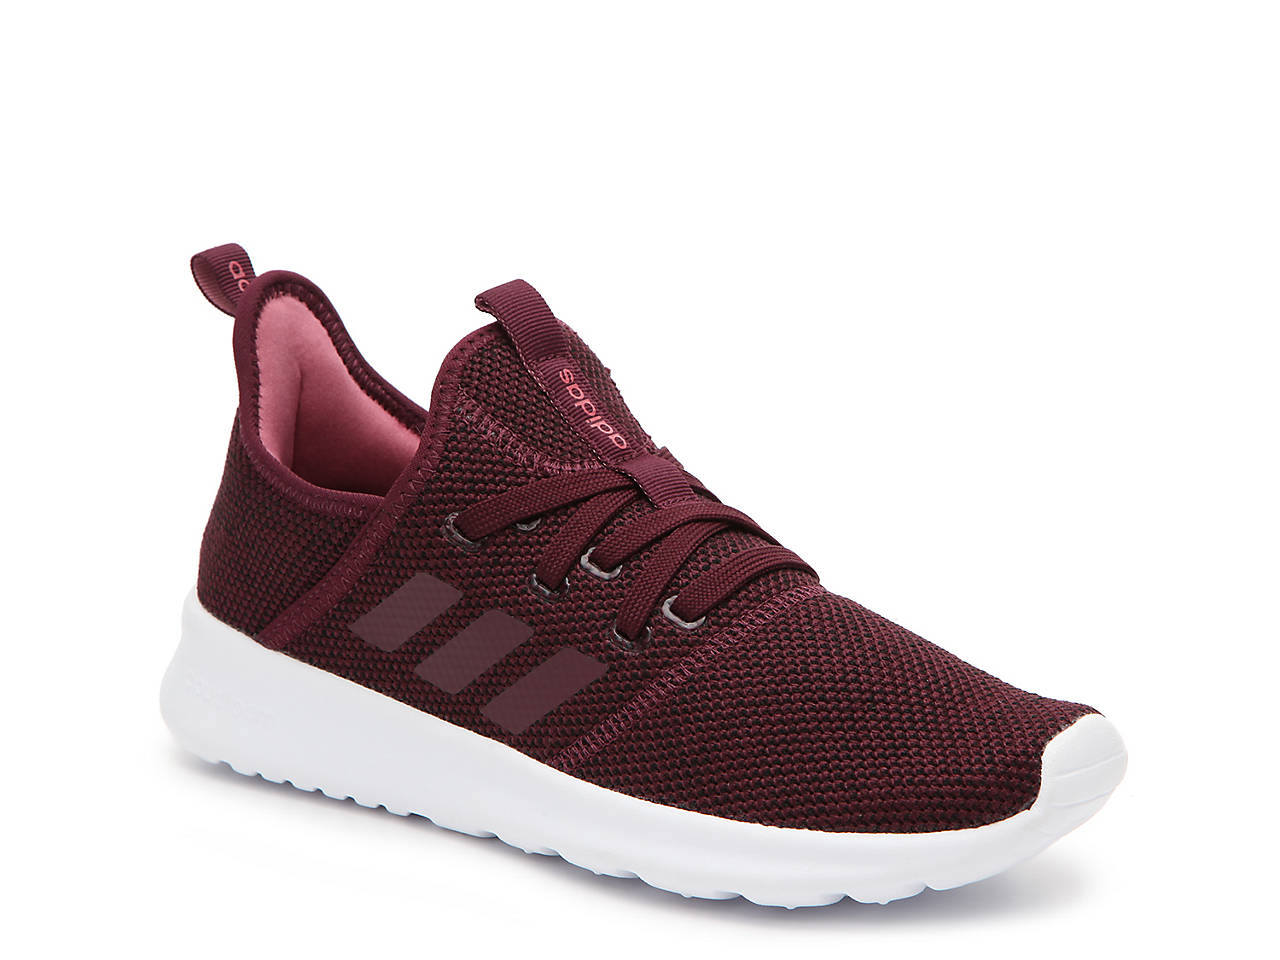 e1a002eb075 adidas Cloudfoam Pure Sneaker - Women s Women s Shoes